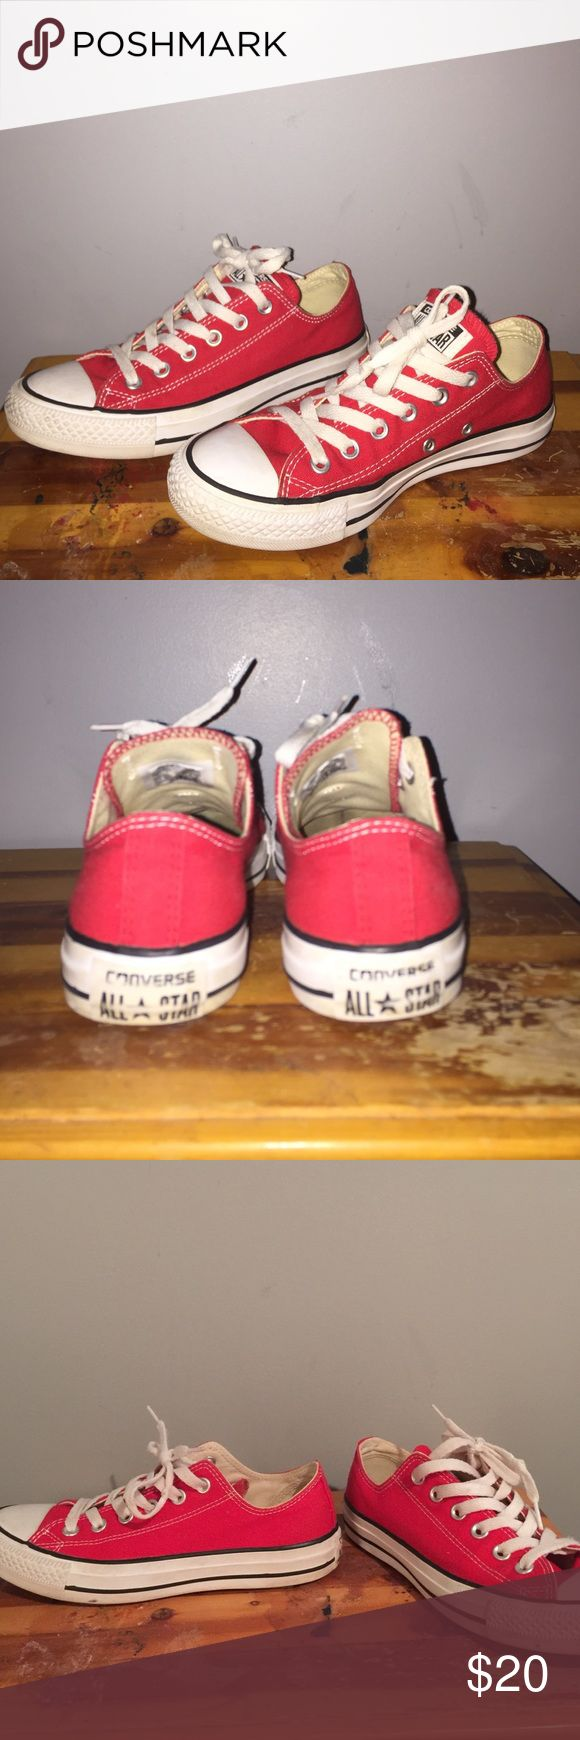 """Beautiful red converse for a great deal! Red converse, a little discoloration in the back """"all-stars"""" label. Gray condition. Wonderful shoes. Buy now! Will negotiate price!!!!!! Converse Shoes Flats & Loafers"""